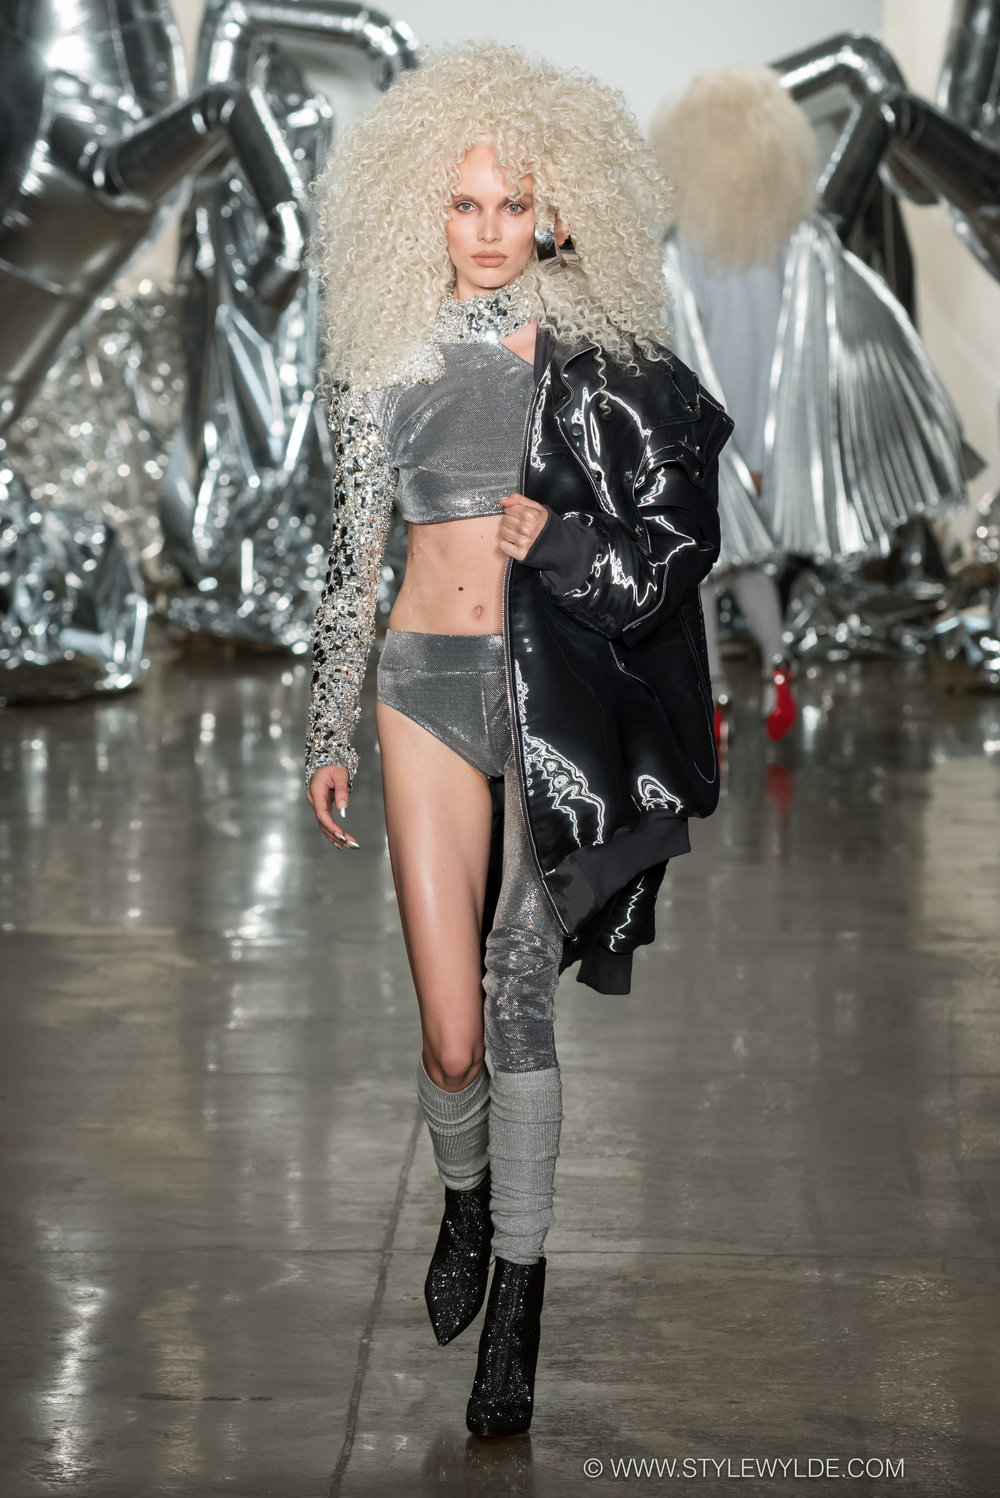 stylewylde-The Blonds SS17-FOH- Edits-28.jpg